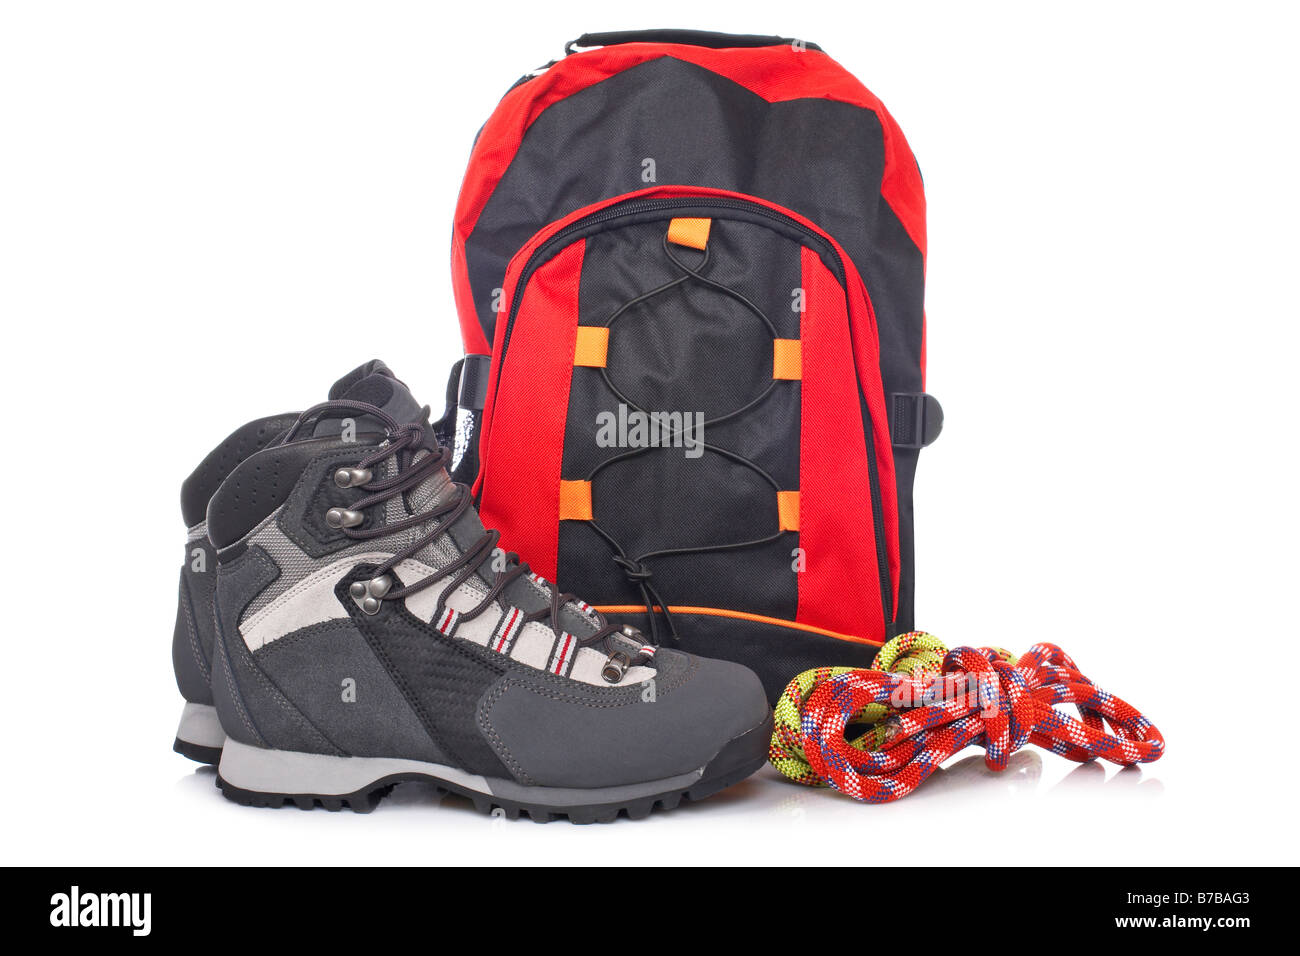 Hiking boots two rope and backpack reflected on white background - Stock Image